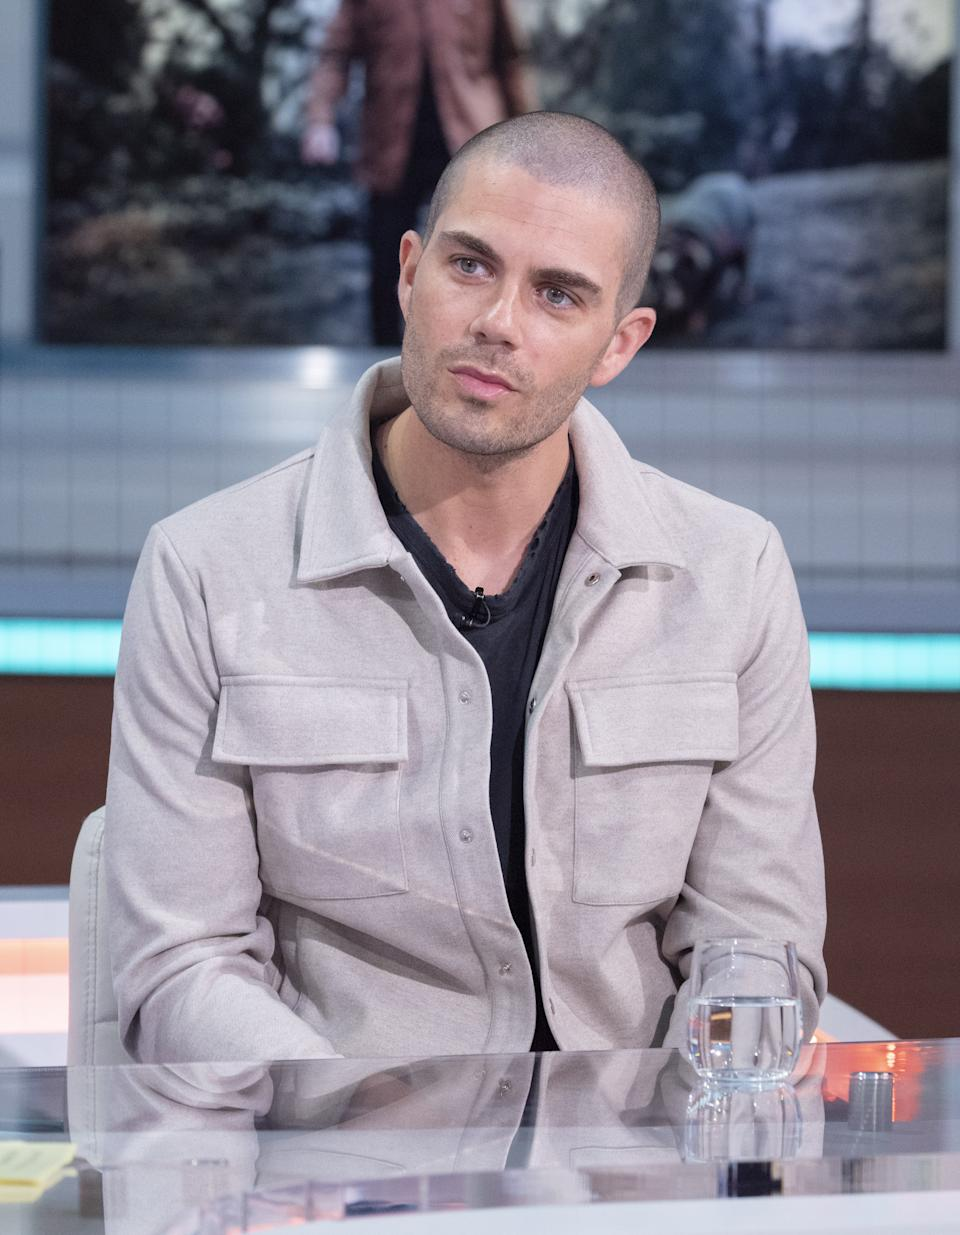 Editorial use only Mandatory Credit: Photo by Ken McKay/ITV/Shutterstock (11896775u) Max George 'Good Morning Britain' TV Show, London, UK - 10 May 2021